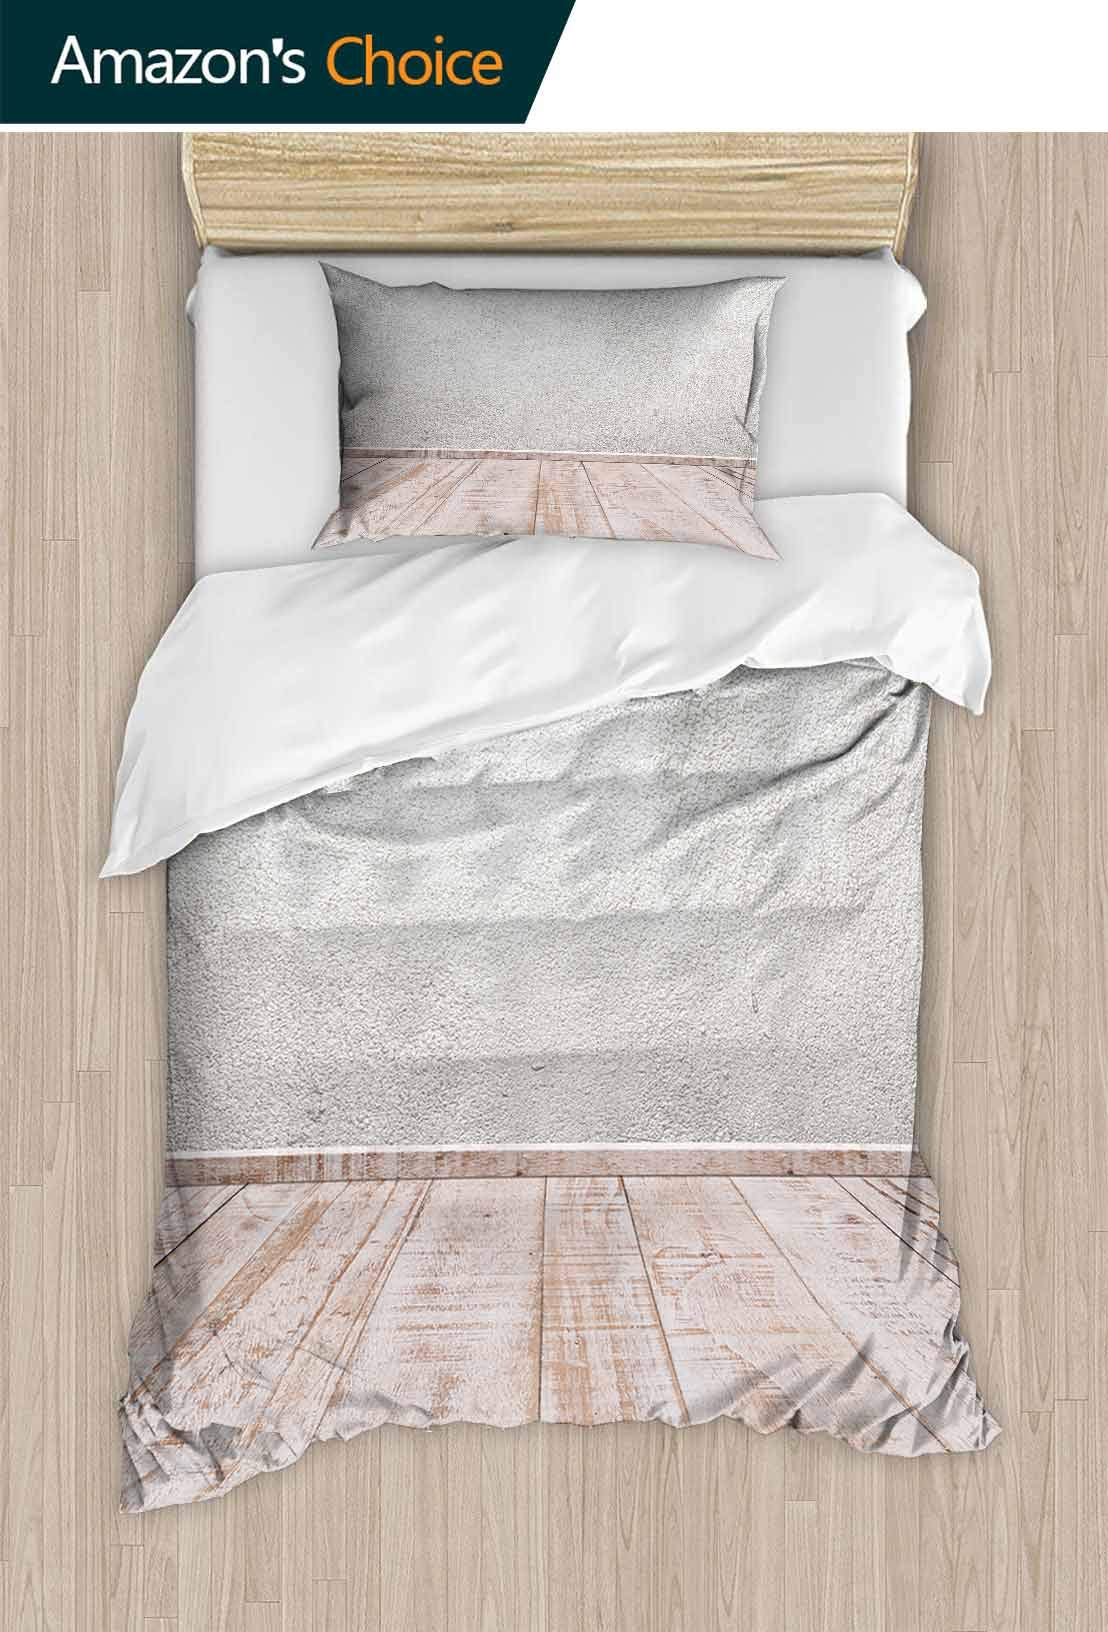 PRUNUSHOME Fashions Home Bedding Concrete Walls and Wood Floor for Text and Background.Copy Space Durable Elasticity California King